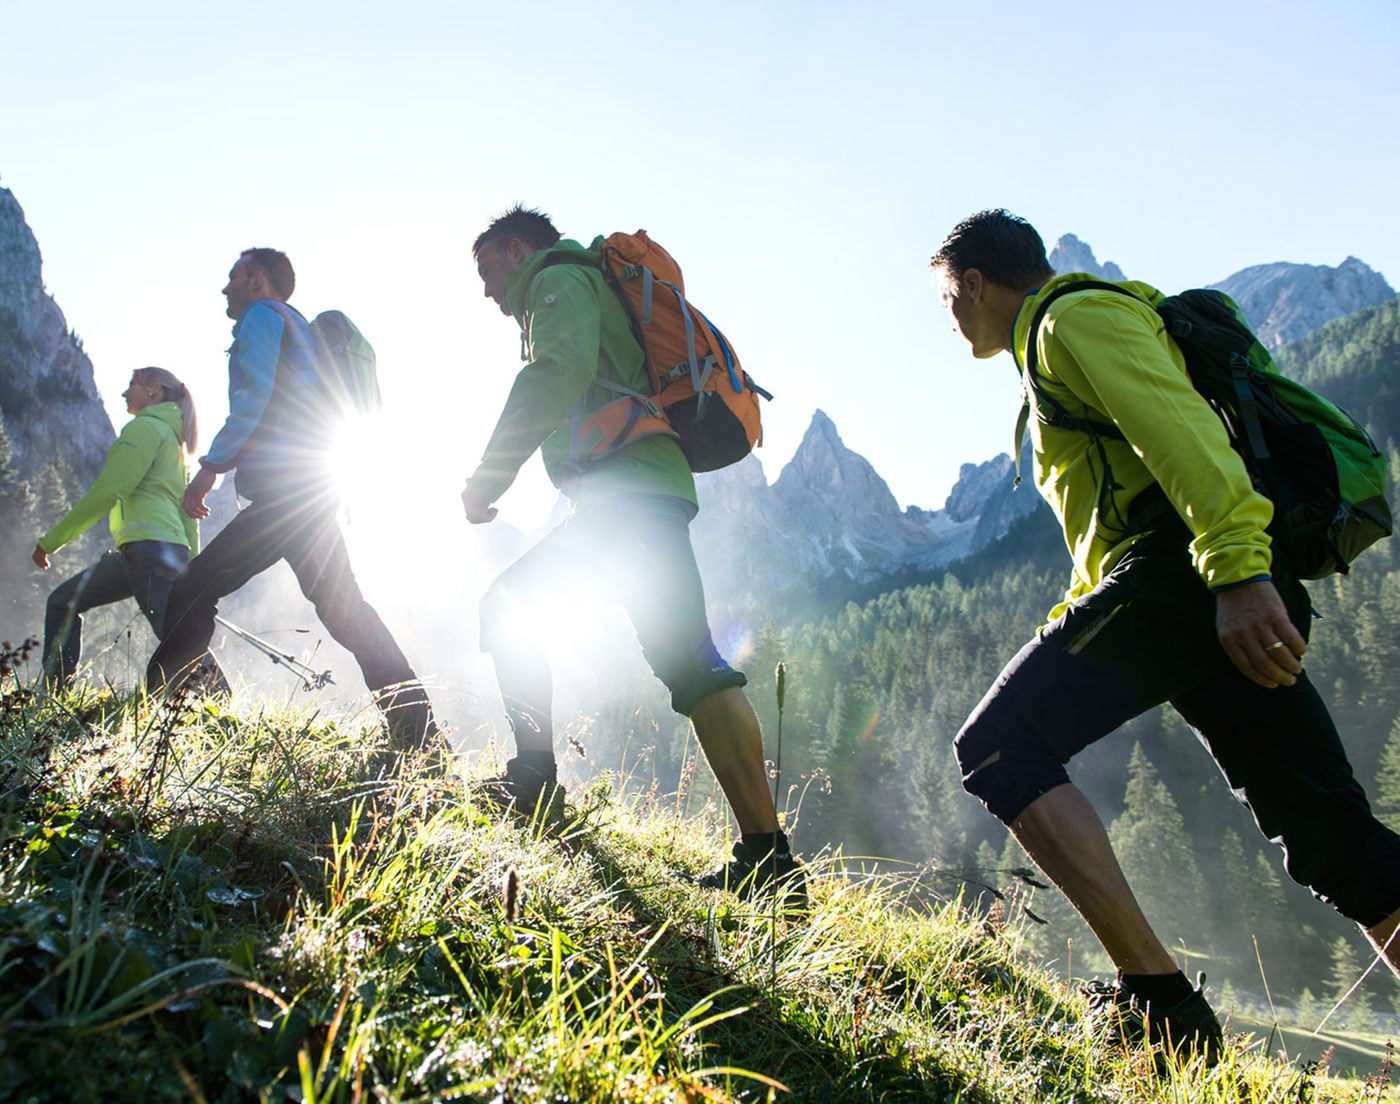 Hiking - Health for body and mind